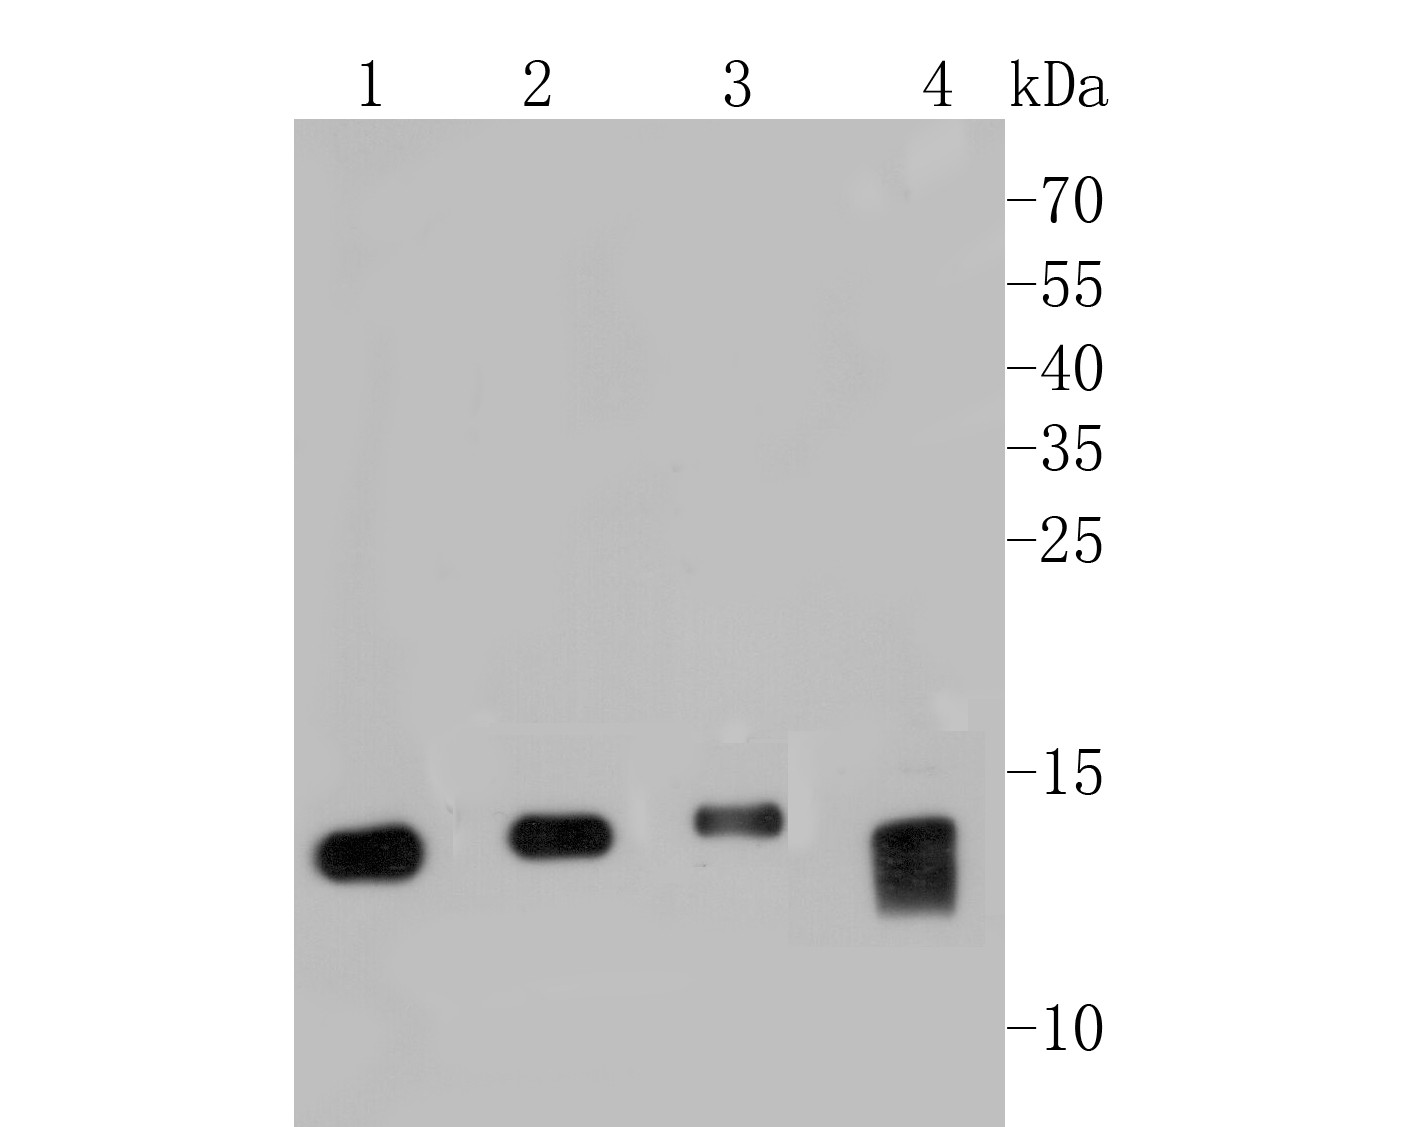 Western blot analysis of MGST1 on different lysates. Proteins were transferred to a PVDF membrane and blocked with 5% BSA in PBS for 1 hour at room temperature. The primary antibody (EM1901-13, 1/500) was used in 5% BSA at room temperature for 2 hours. Goat Anti-Mouse IgG - HRP Secondary Antibody (HA1006) at 1:5,000 dilution was used for 1 hour at room temperature.<br /> Positive control: <br /> Lane 1: SiHa cell lysate<br /> Lane 2: HepG2 cell lysate<br /> Lane 3: A549 cell lysate<br /> Lane 4: U937 cell lysate